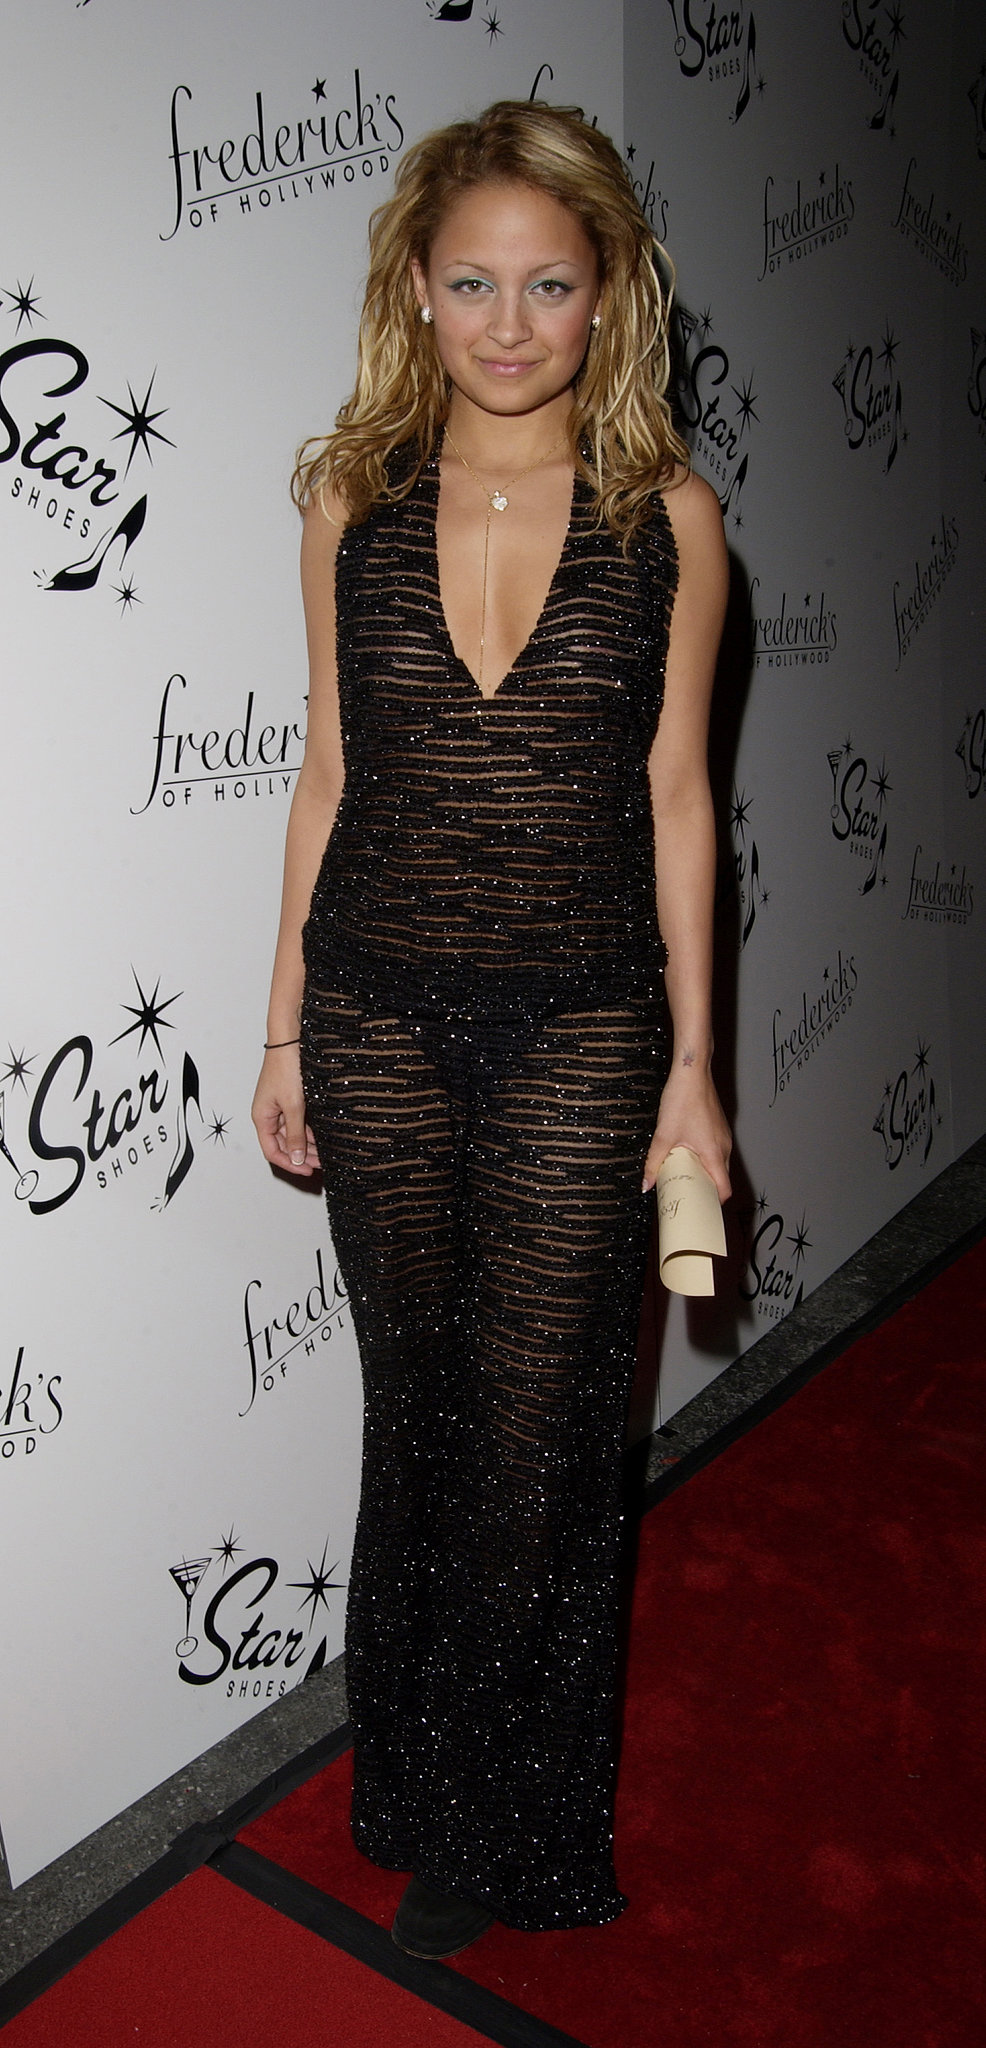 Whoa, girl! Nicole Richie bared (almost) all in a sheer tiger-print dress that didn't leave much to the imagination. It was actually pretty appropriate for the occasion — a F